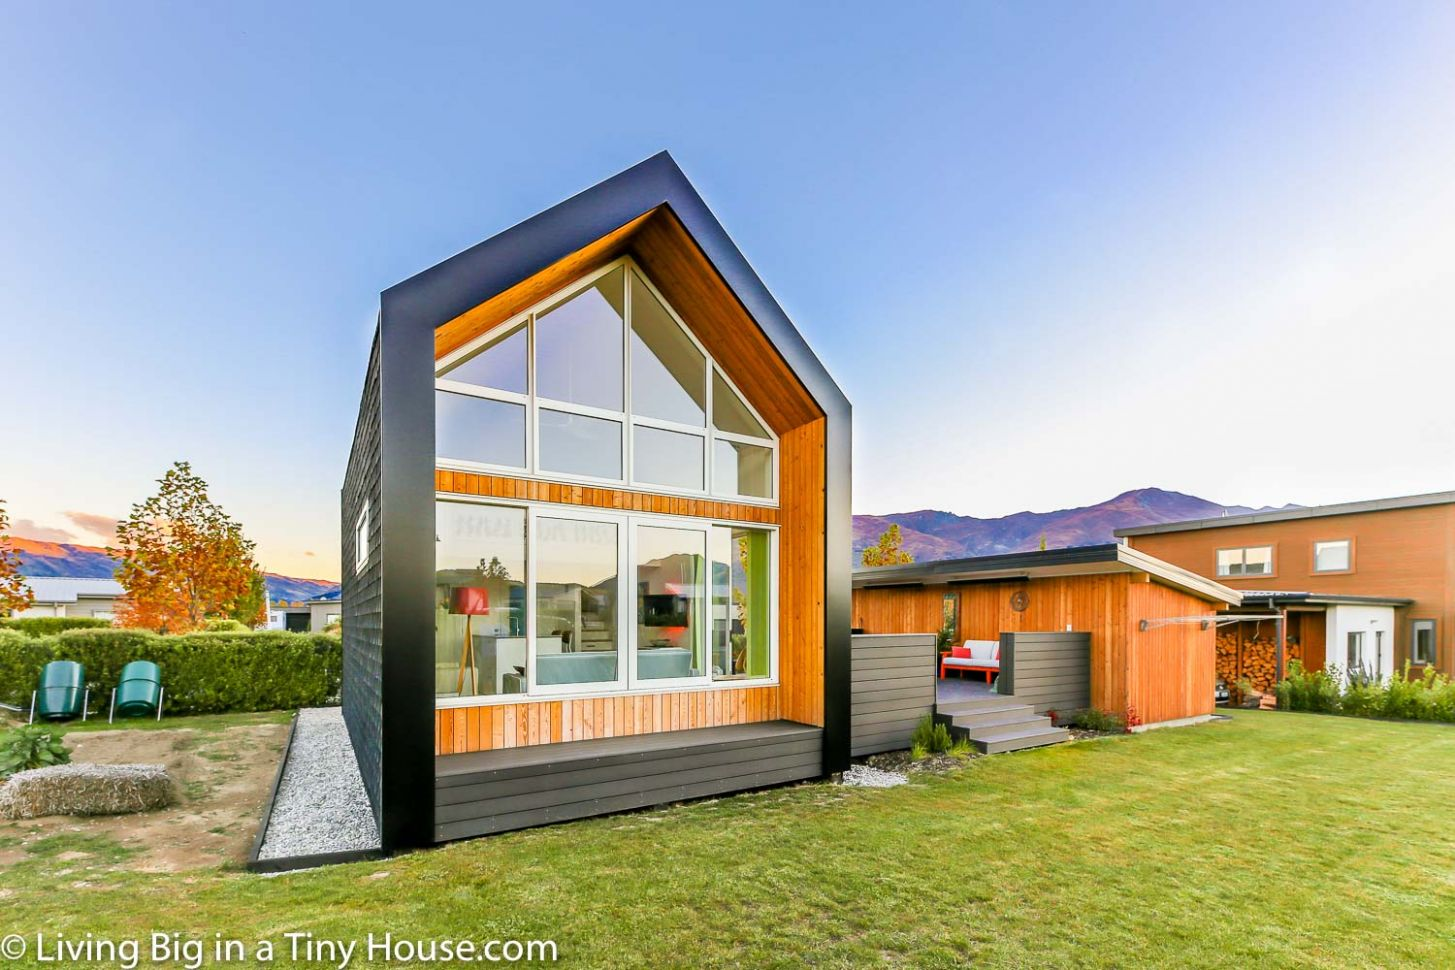 TINY HOUSE ON FOUNDATION (9 of 9) | Living Big In A Tiny House - tiny house on foundation